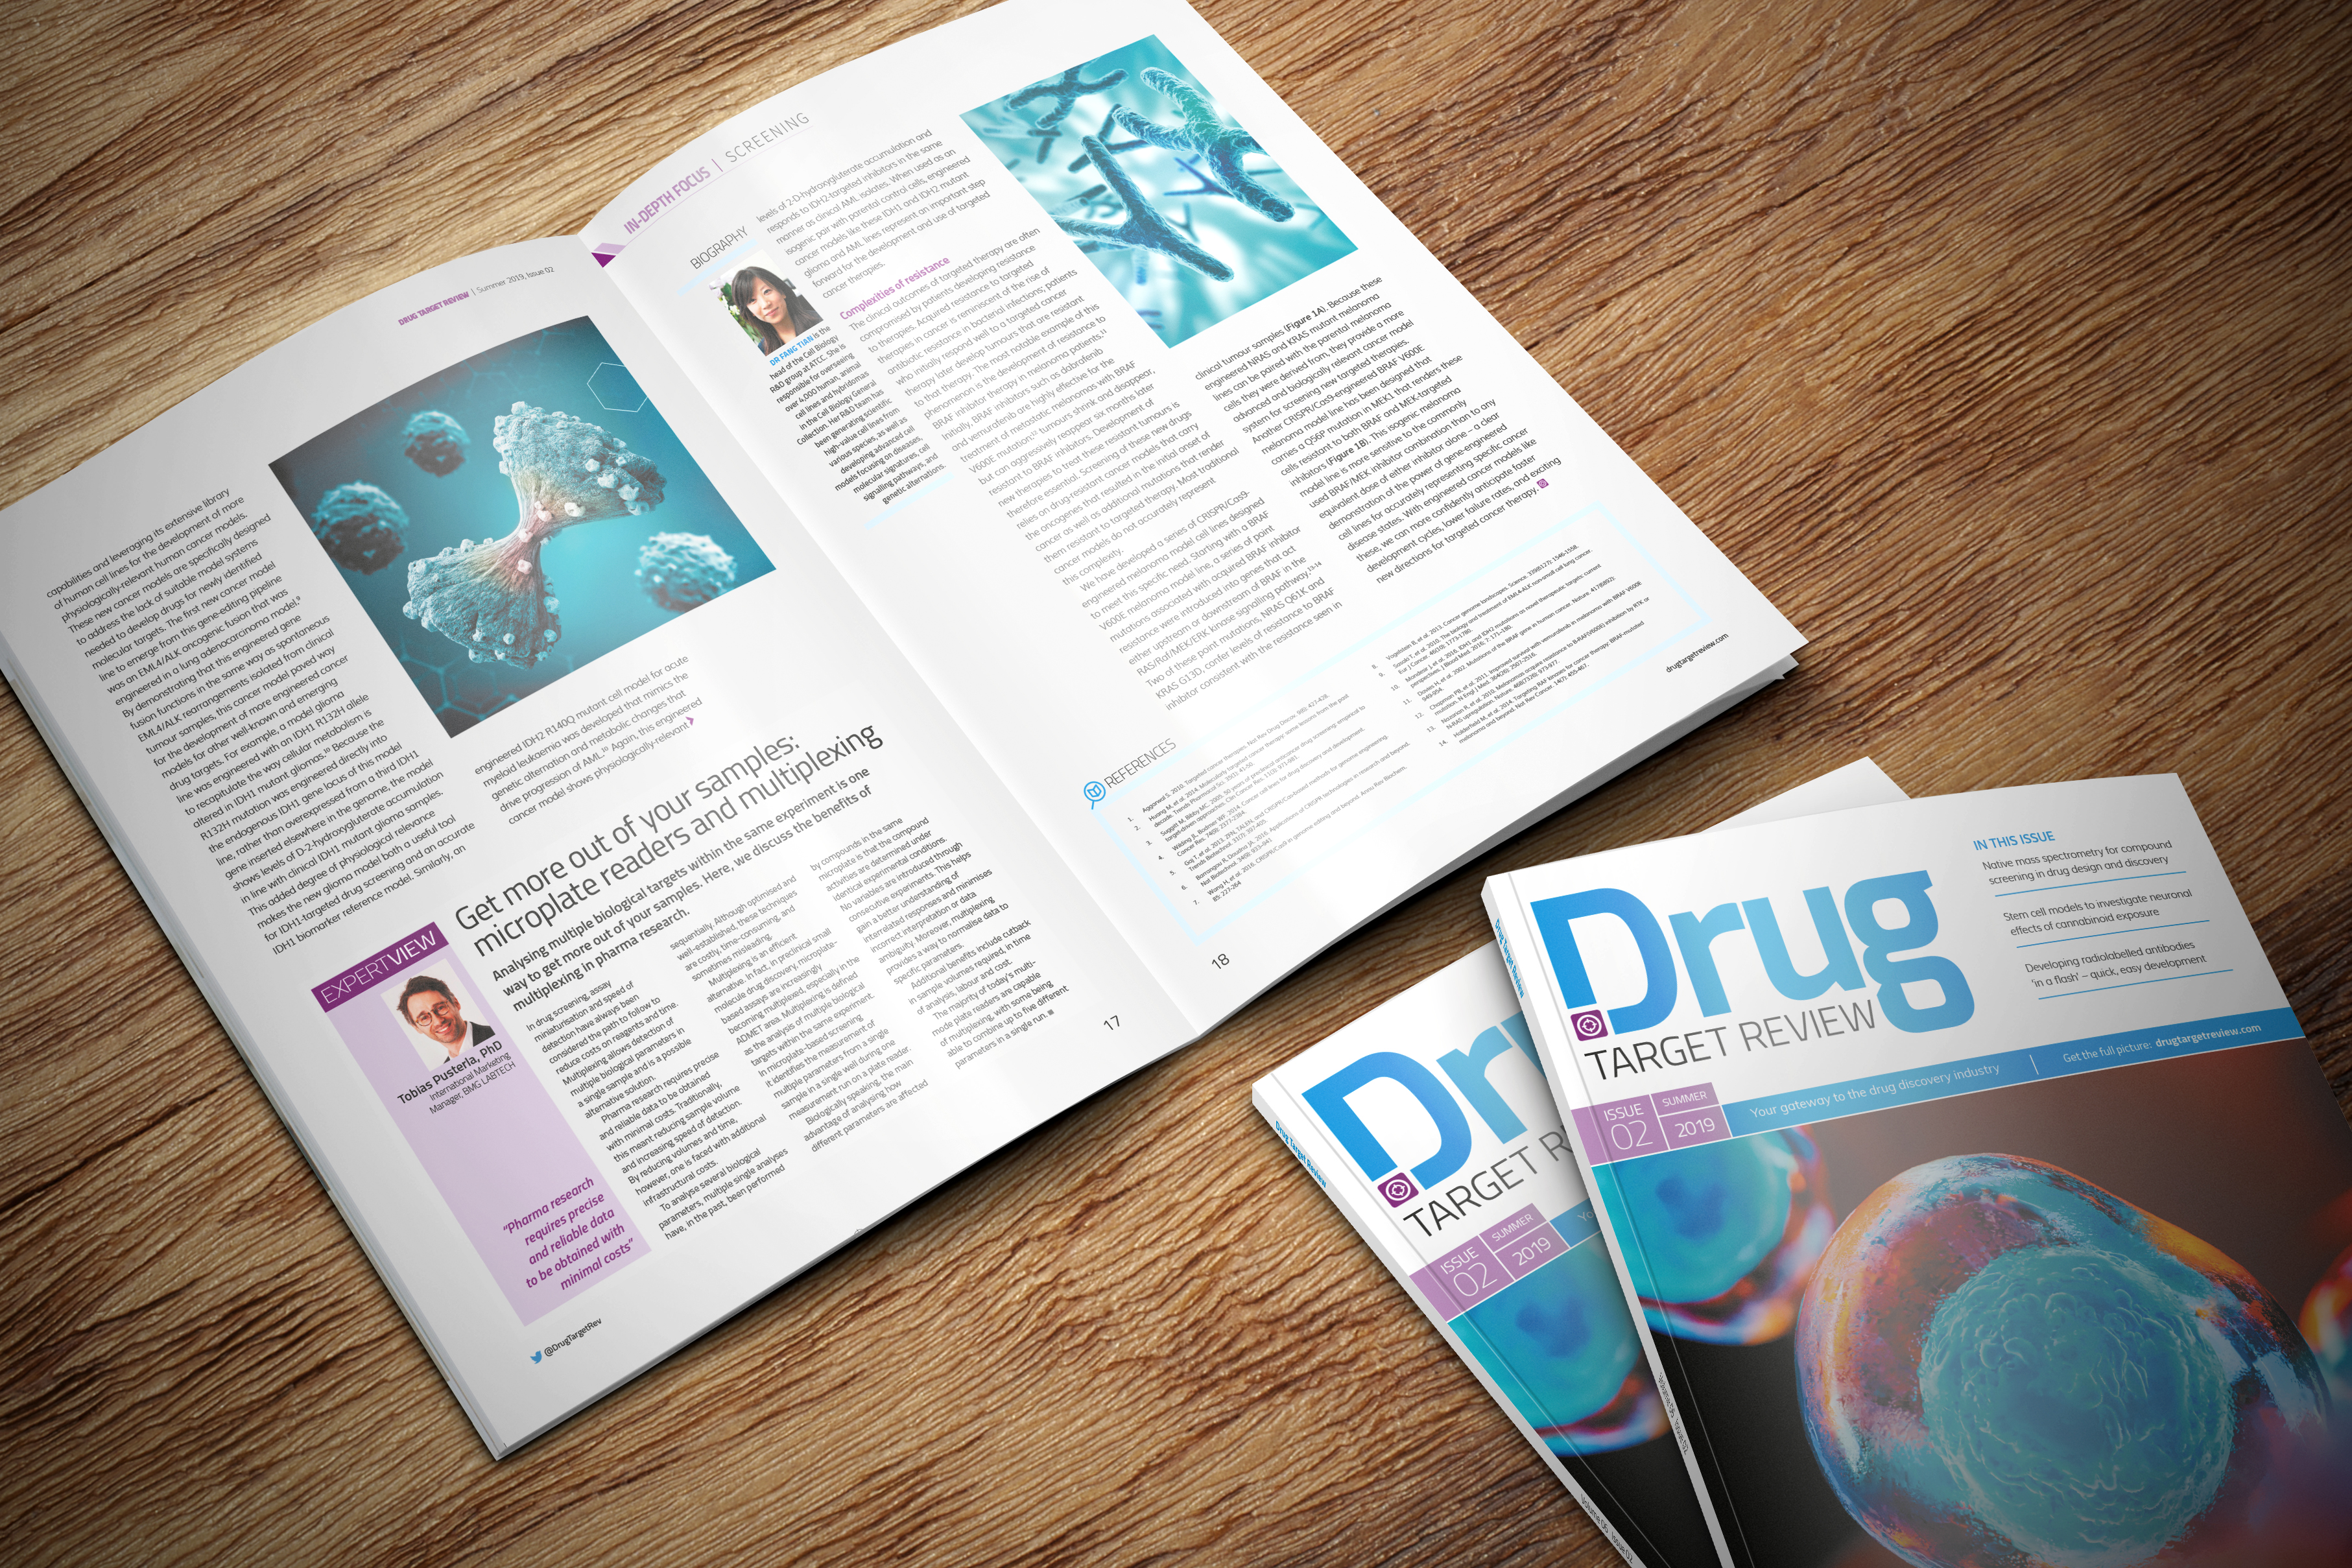 Drug Target Review Issue 2 2019